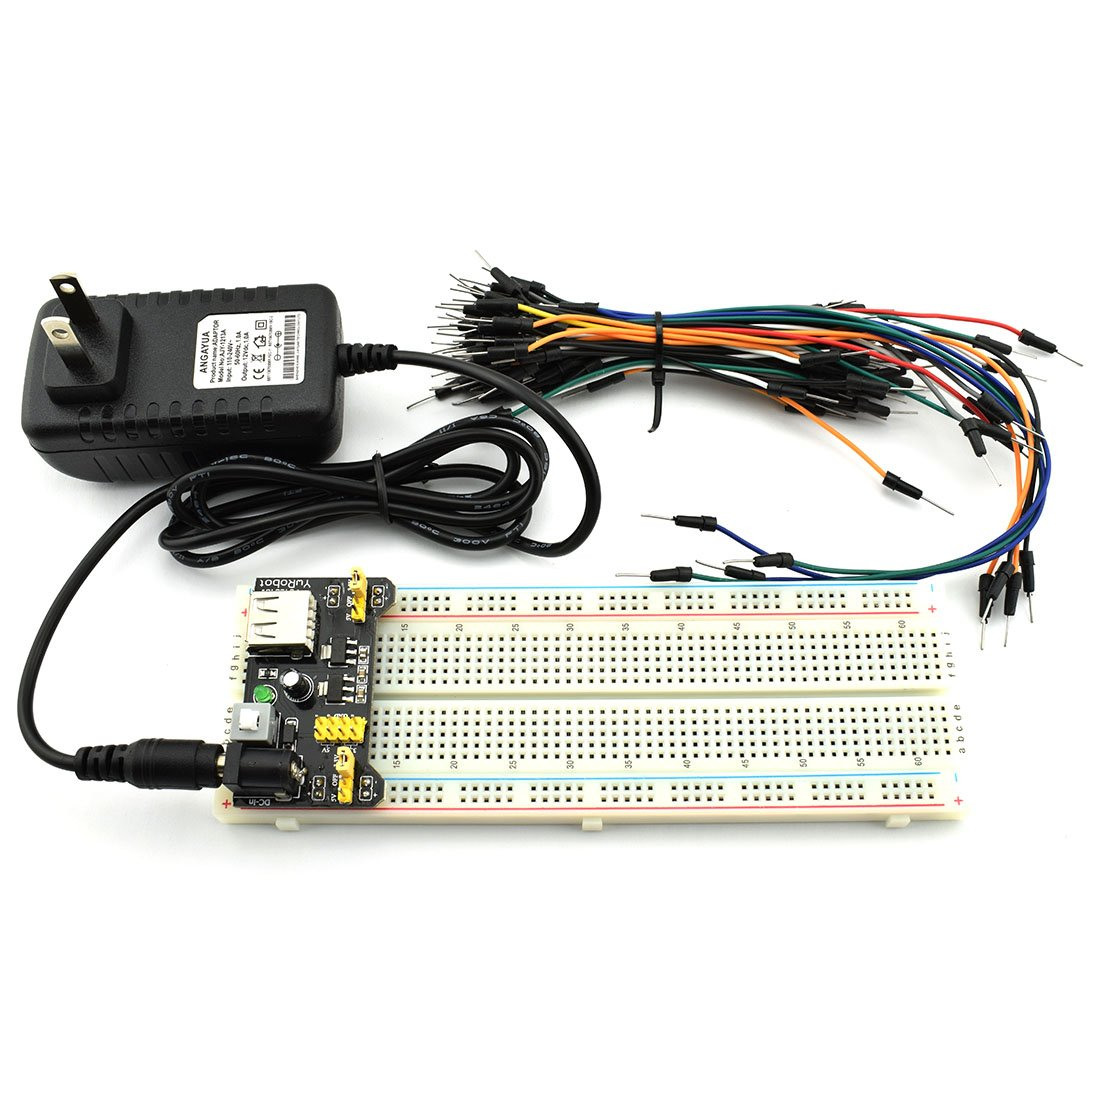 HJ Garden Electronic Component Power Supply Module Assorted Kit for Arduino, Raspberry Pi, STM32, UNO, MEGA2560 830P Breadboard + Power Module + Jumper + 12V 1A Adaptor